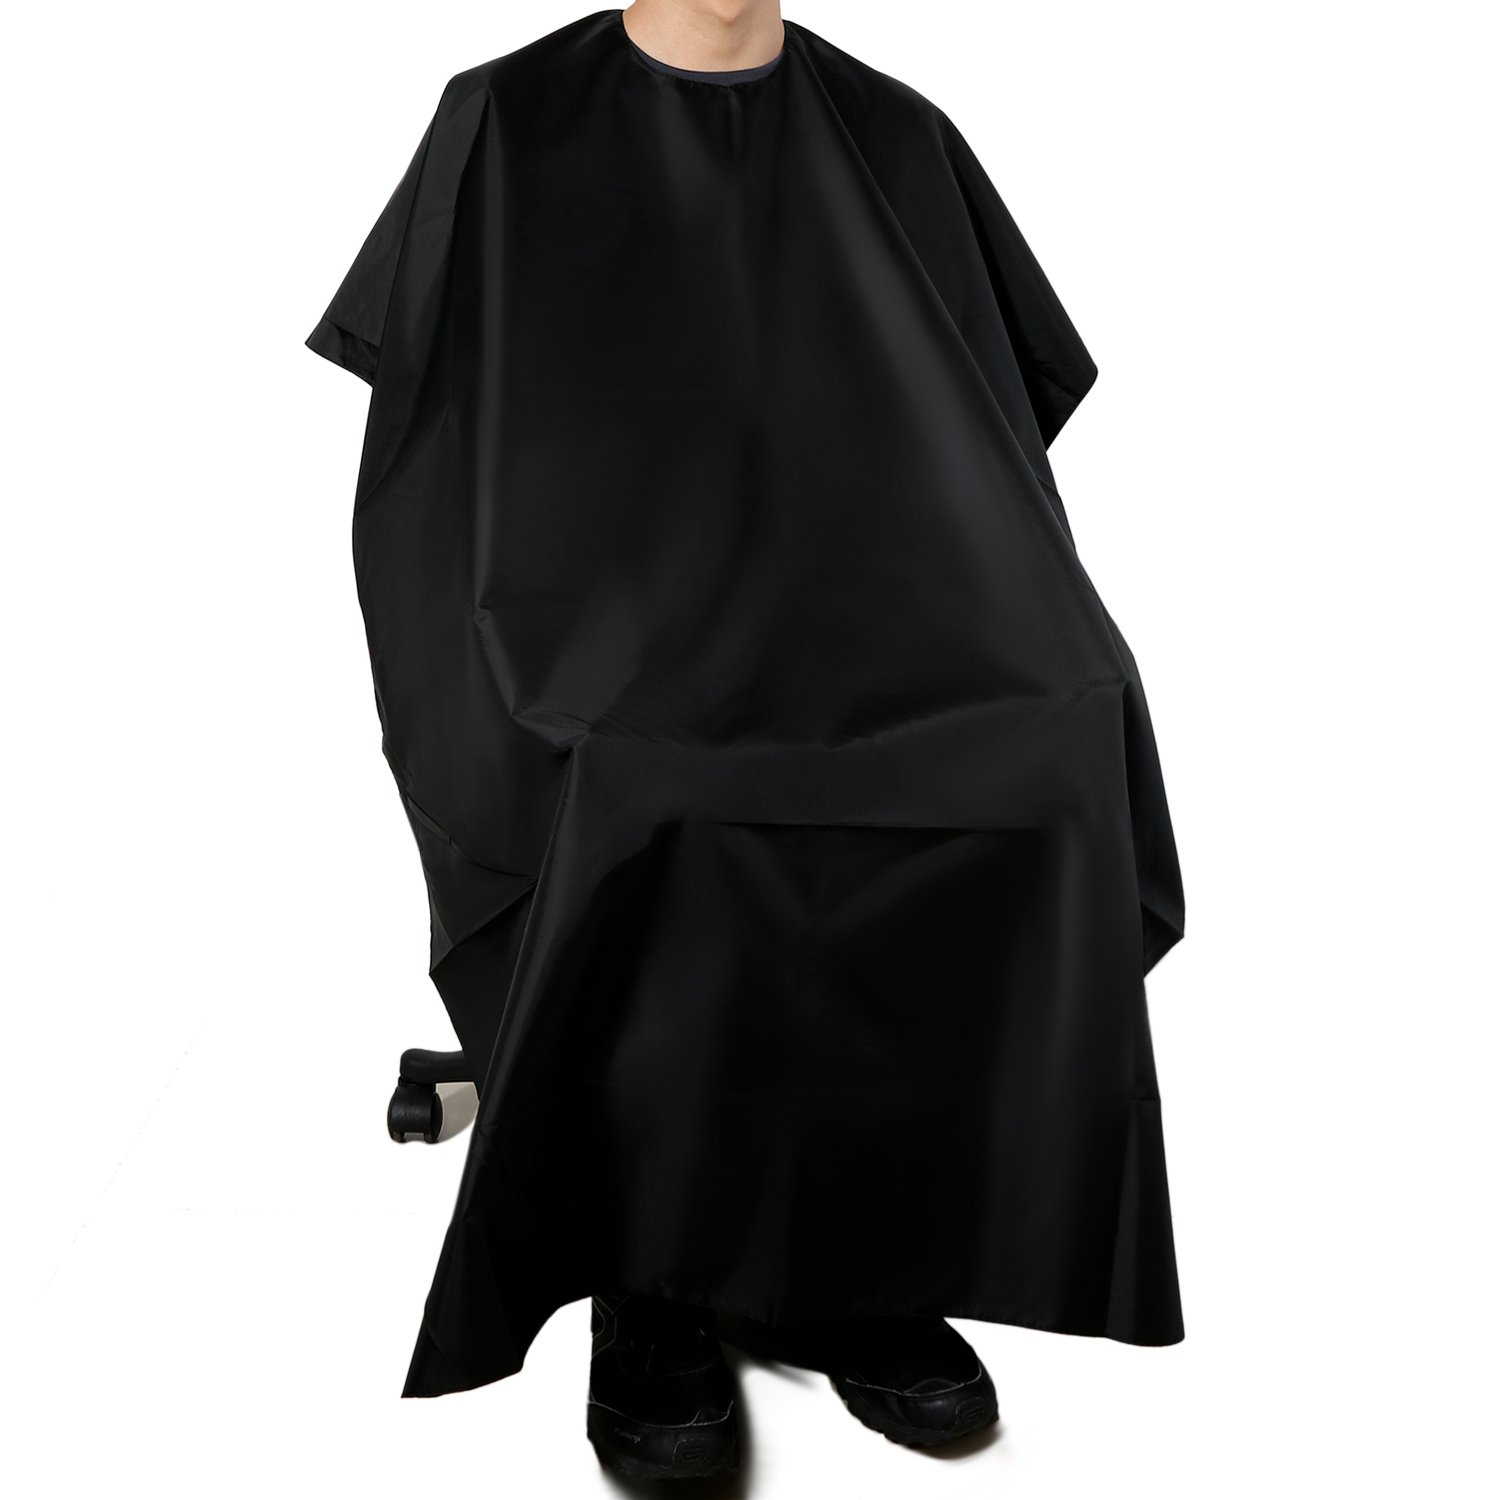 Professional Barber Haircutting Cape Lightweight Polyester Water Resistant for Salon Home Haircuts for Adult with Velcro Closure vtrem